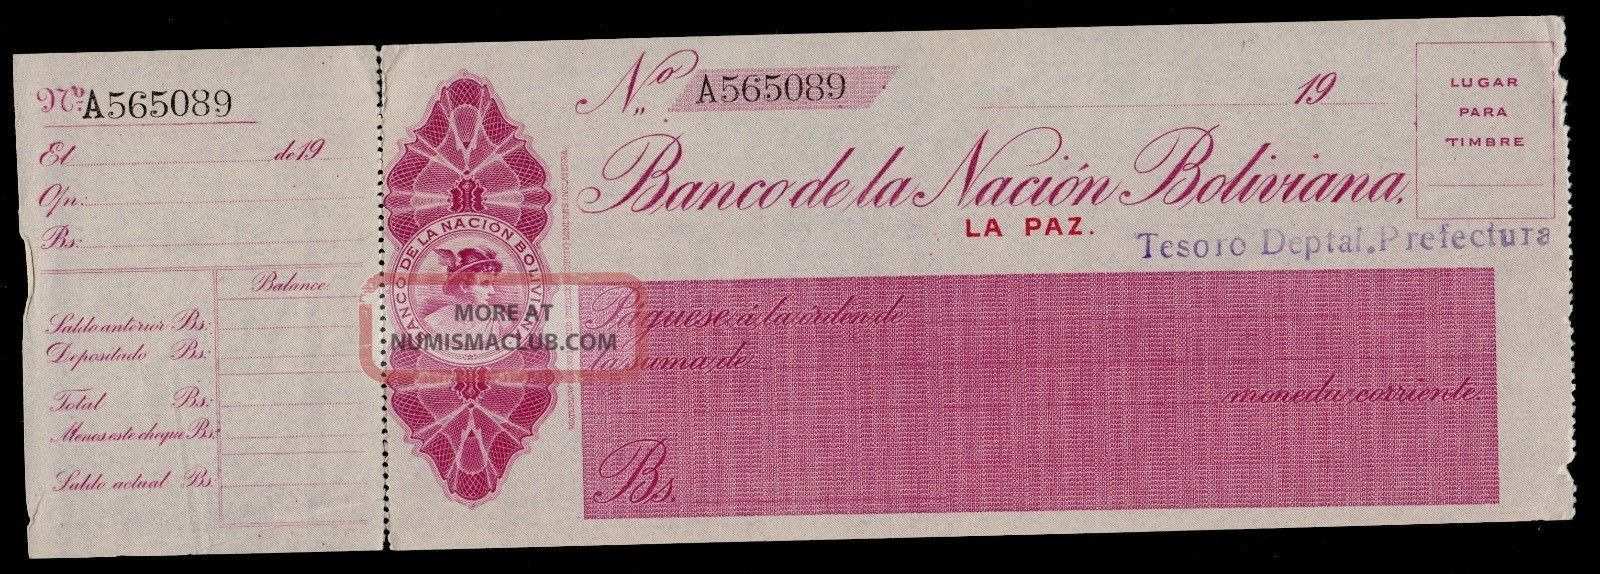 Bolivia Cheque Banco De La Nacion Boliviana T.  Deptal.  19xx Pick Nl Au. Paper Money: World photo